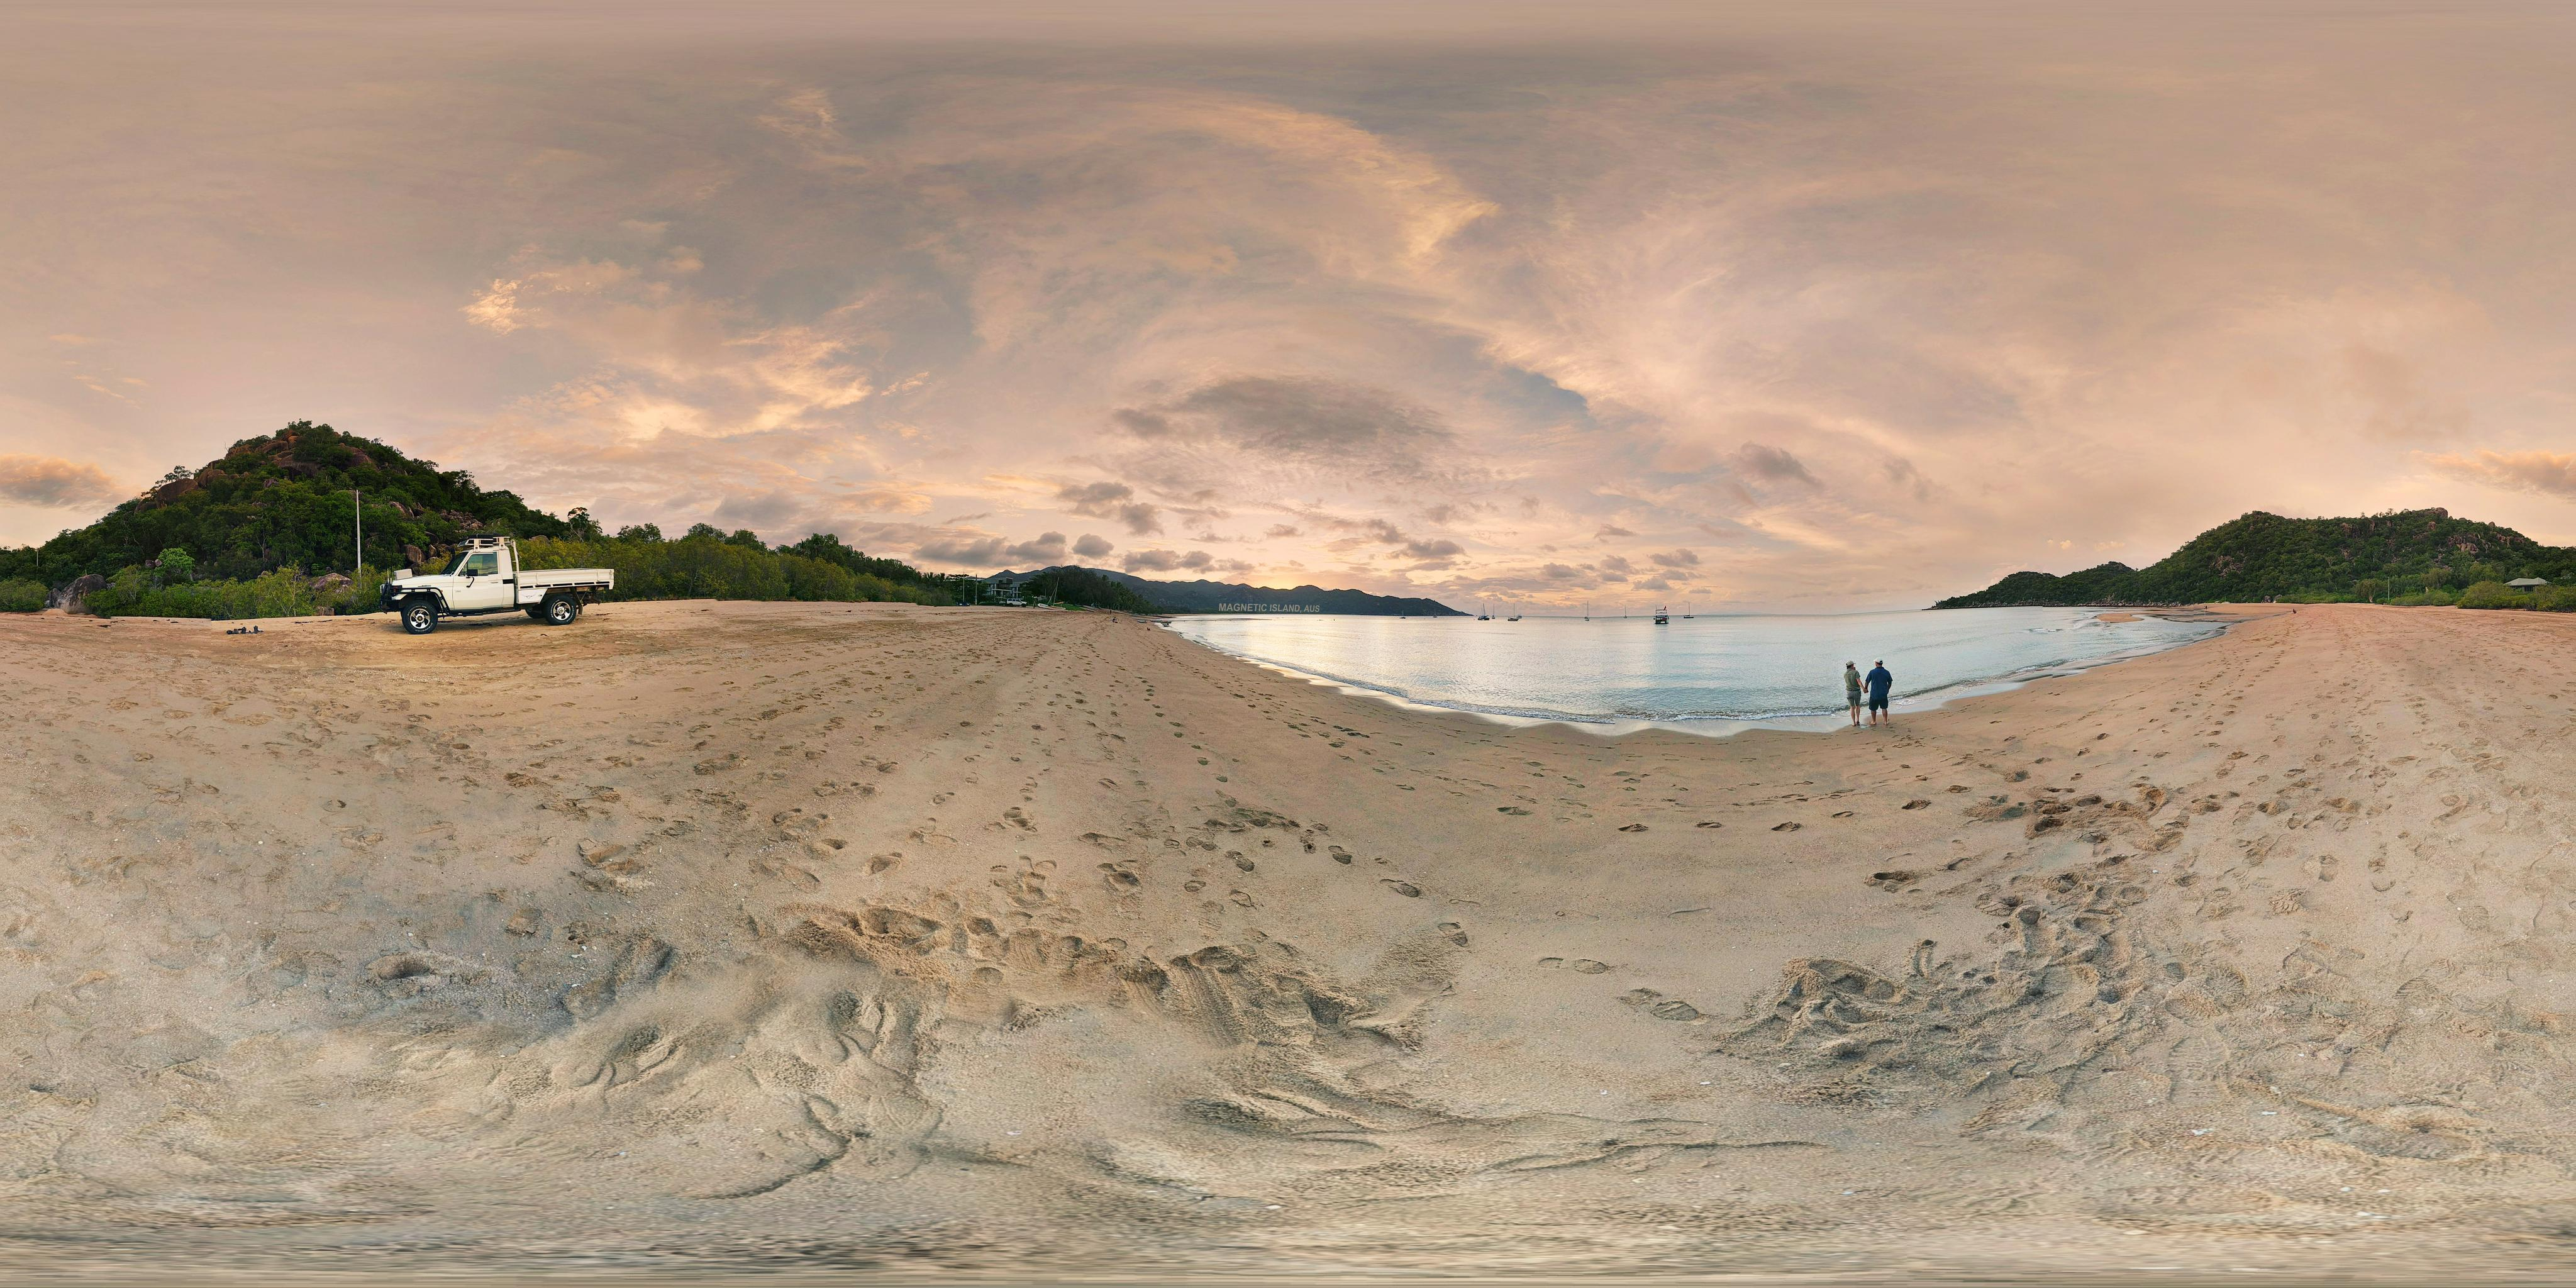 How to Create Your Own 360 Degree Images- Cheap and with